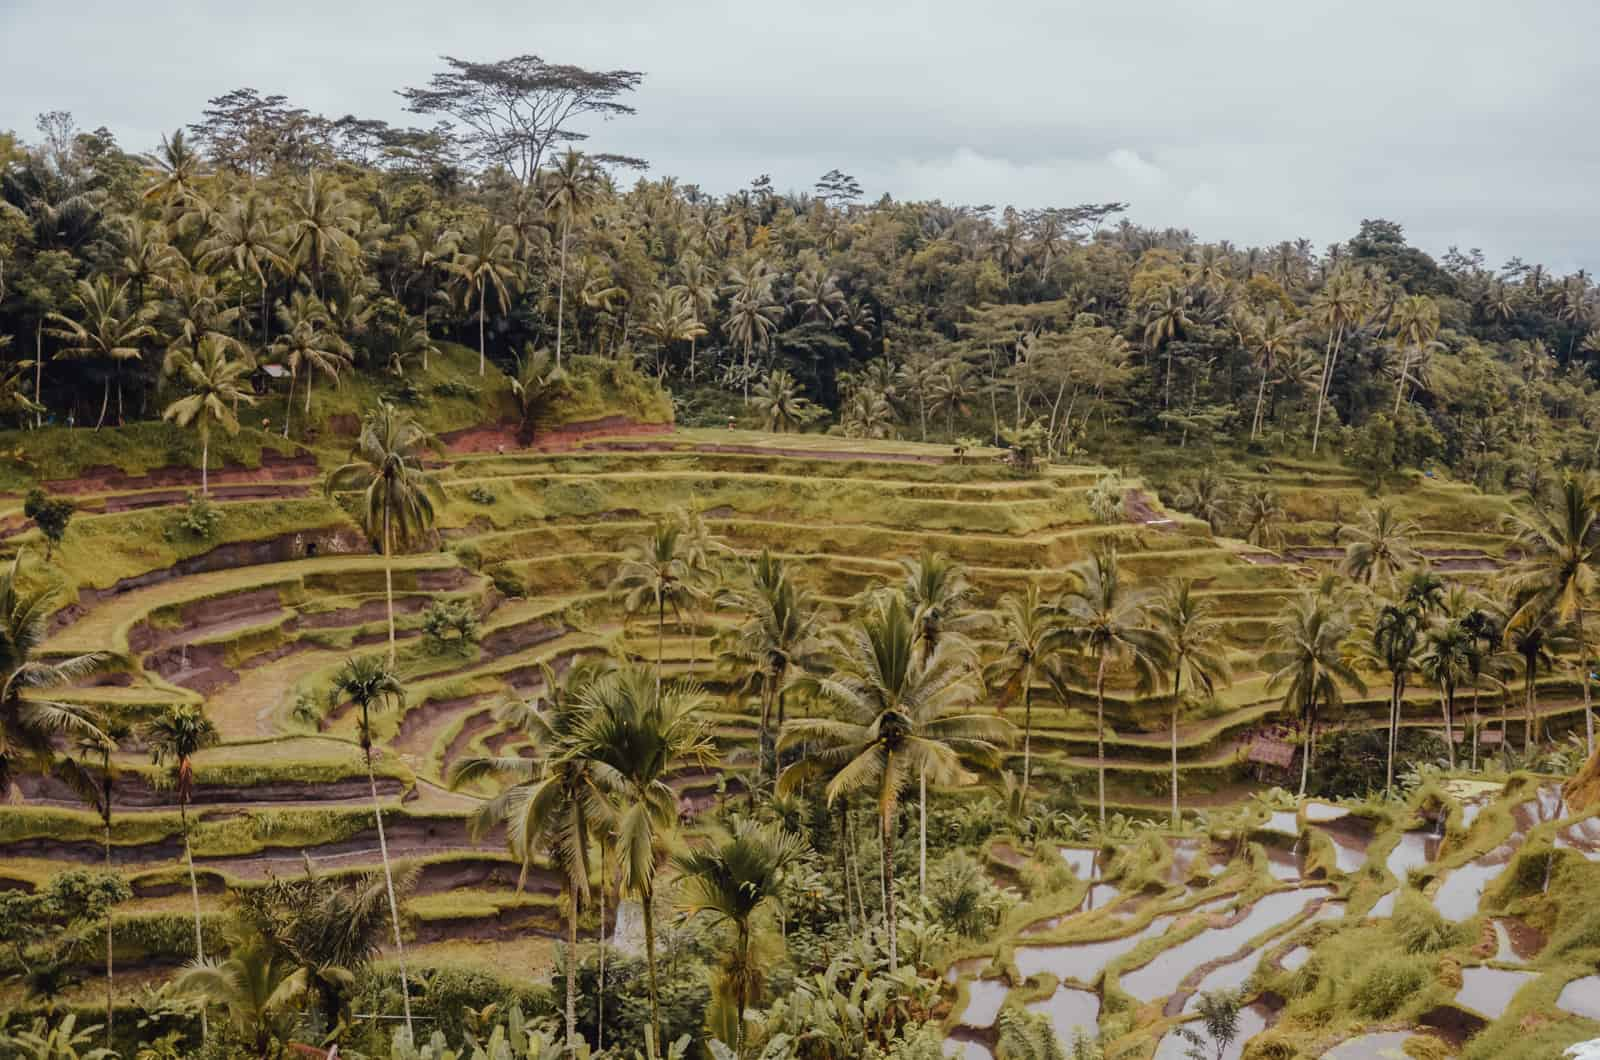 Is Bali worth the hype? My trip to Bali in December: a week of rain!